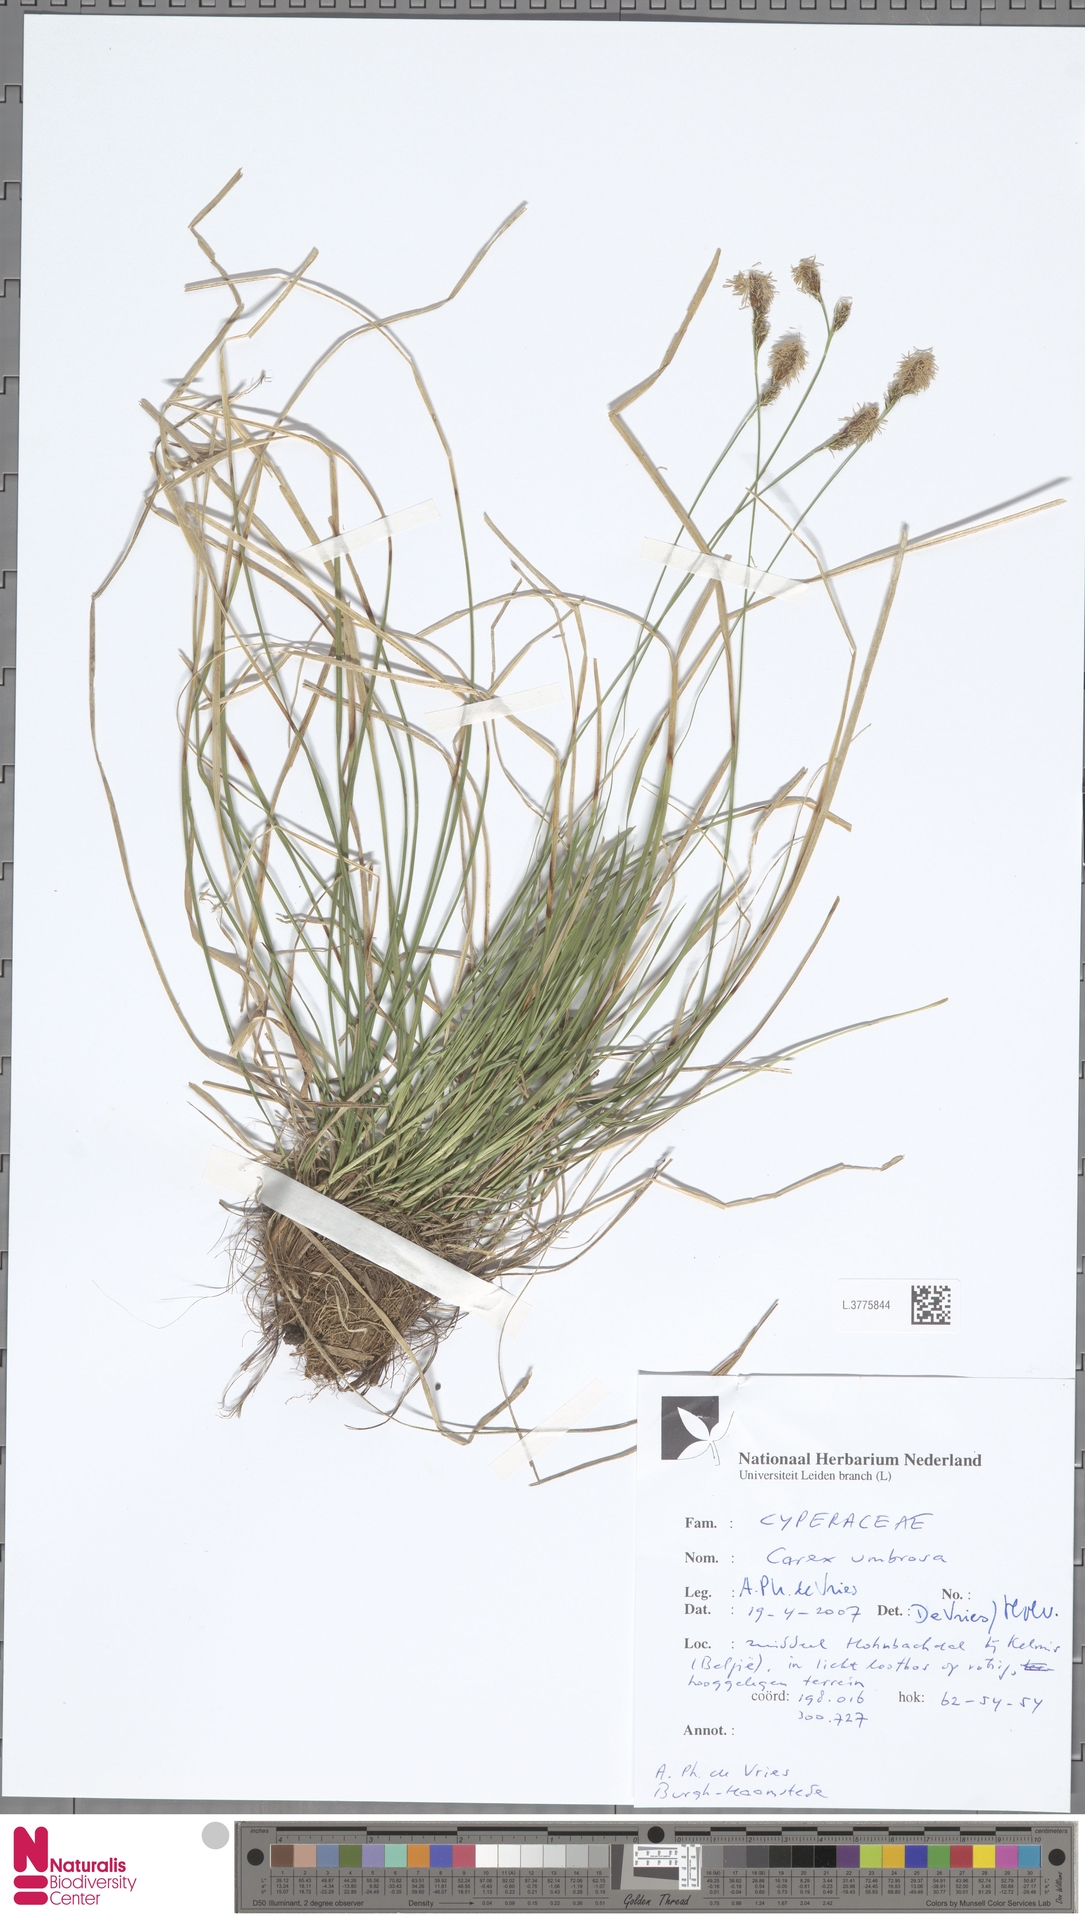 L.3775844 | Carex umbrosa Host